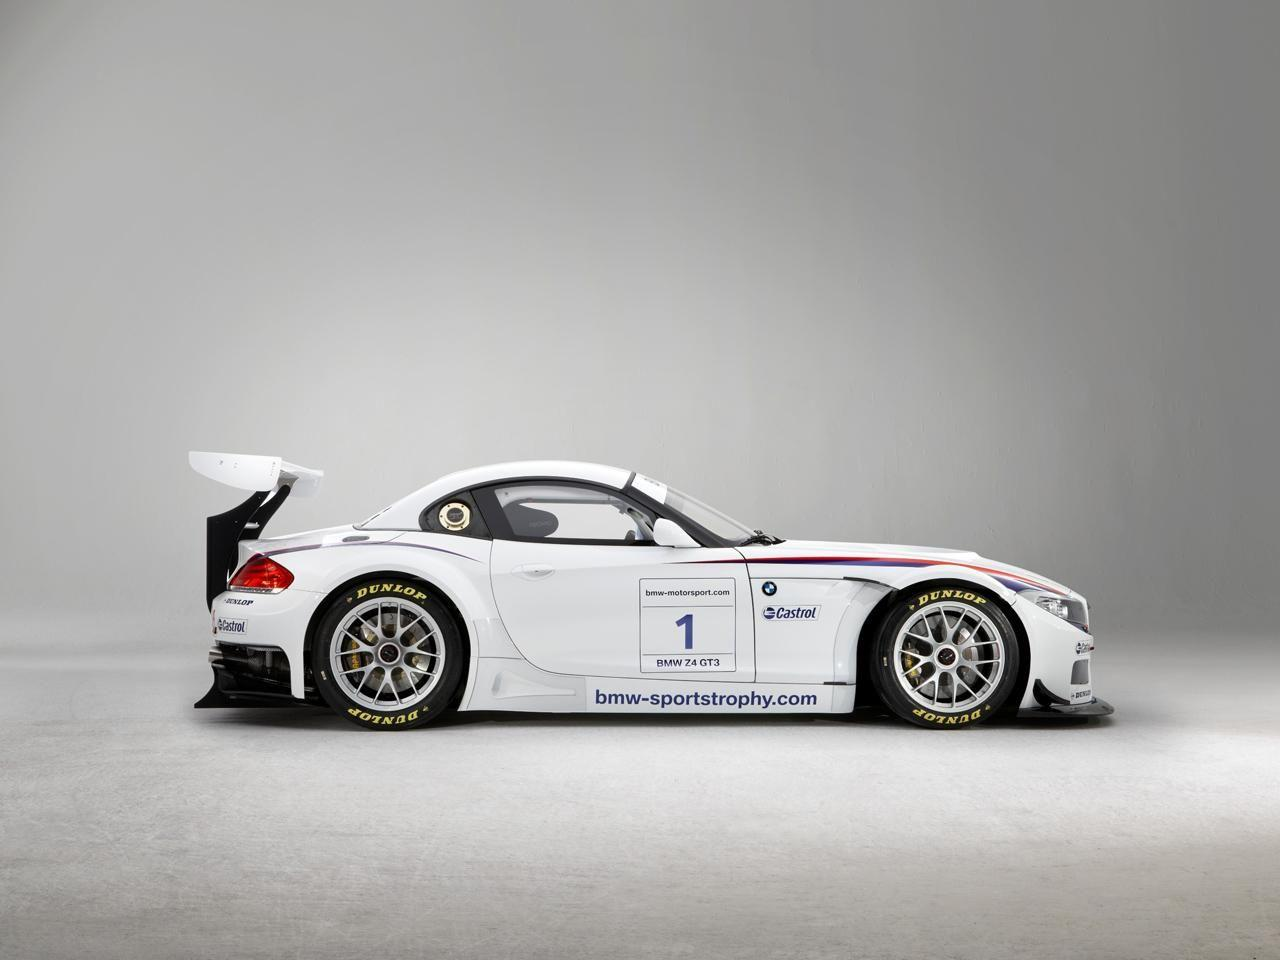 2010 BMW Z4 GT3 Pictures, News, Research, Pricing, msrp, invoice